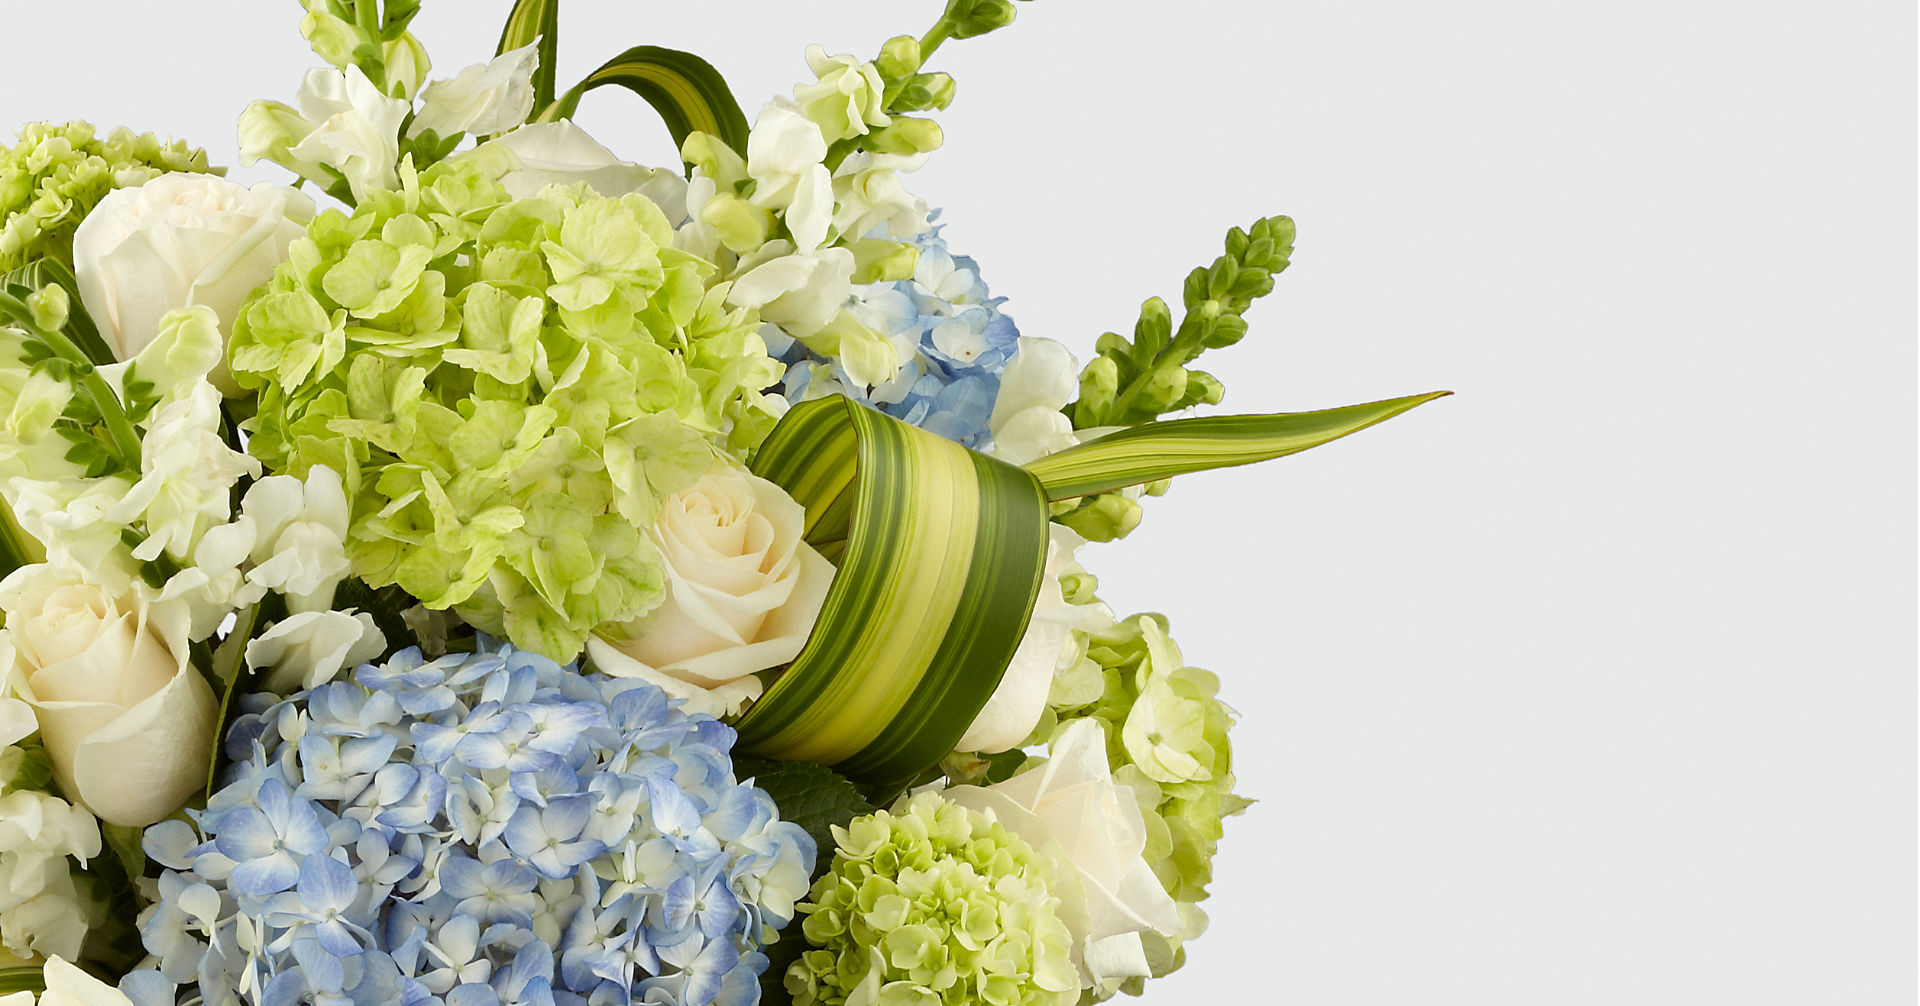 Superior Sights™ Luxury Bouquet - Blue & White - Image 3 Of 5